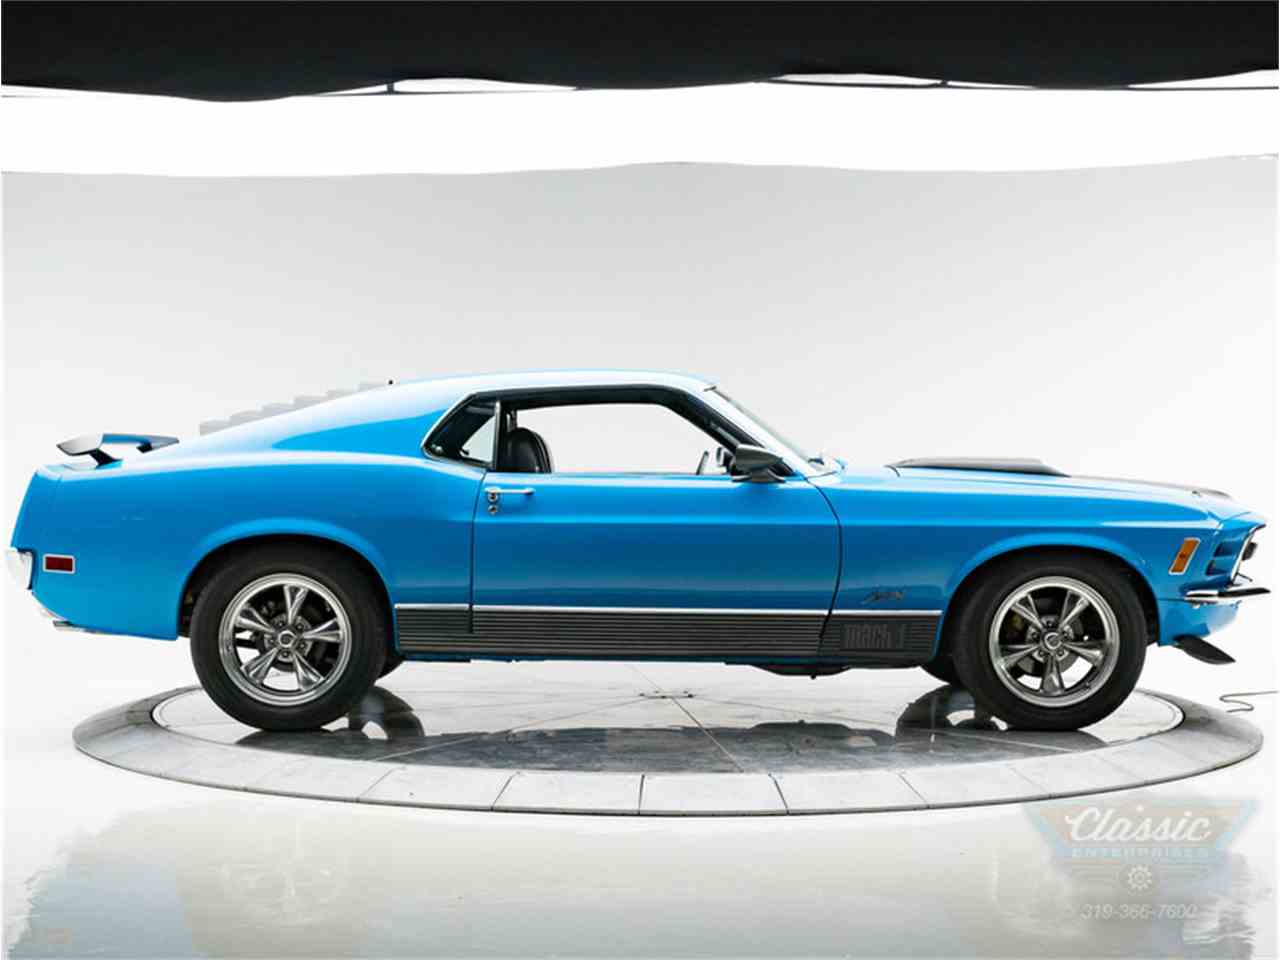 Large Picture of Classic '70 Mustang Mach 1 Offered by Classic Enterprises - LWJF